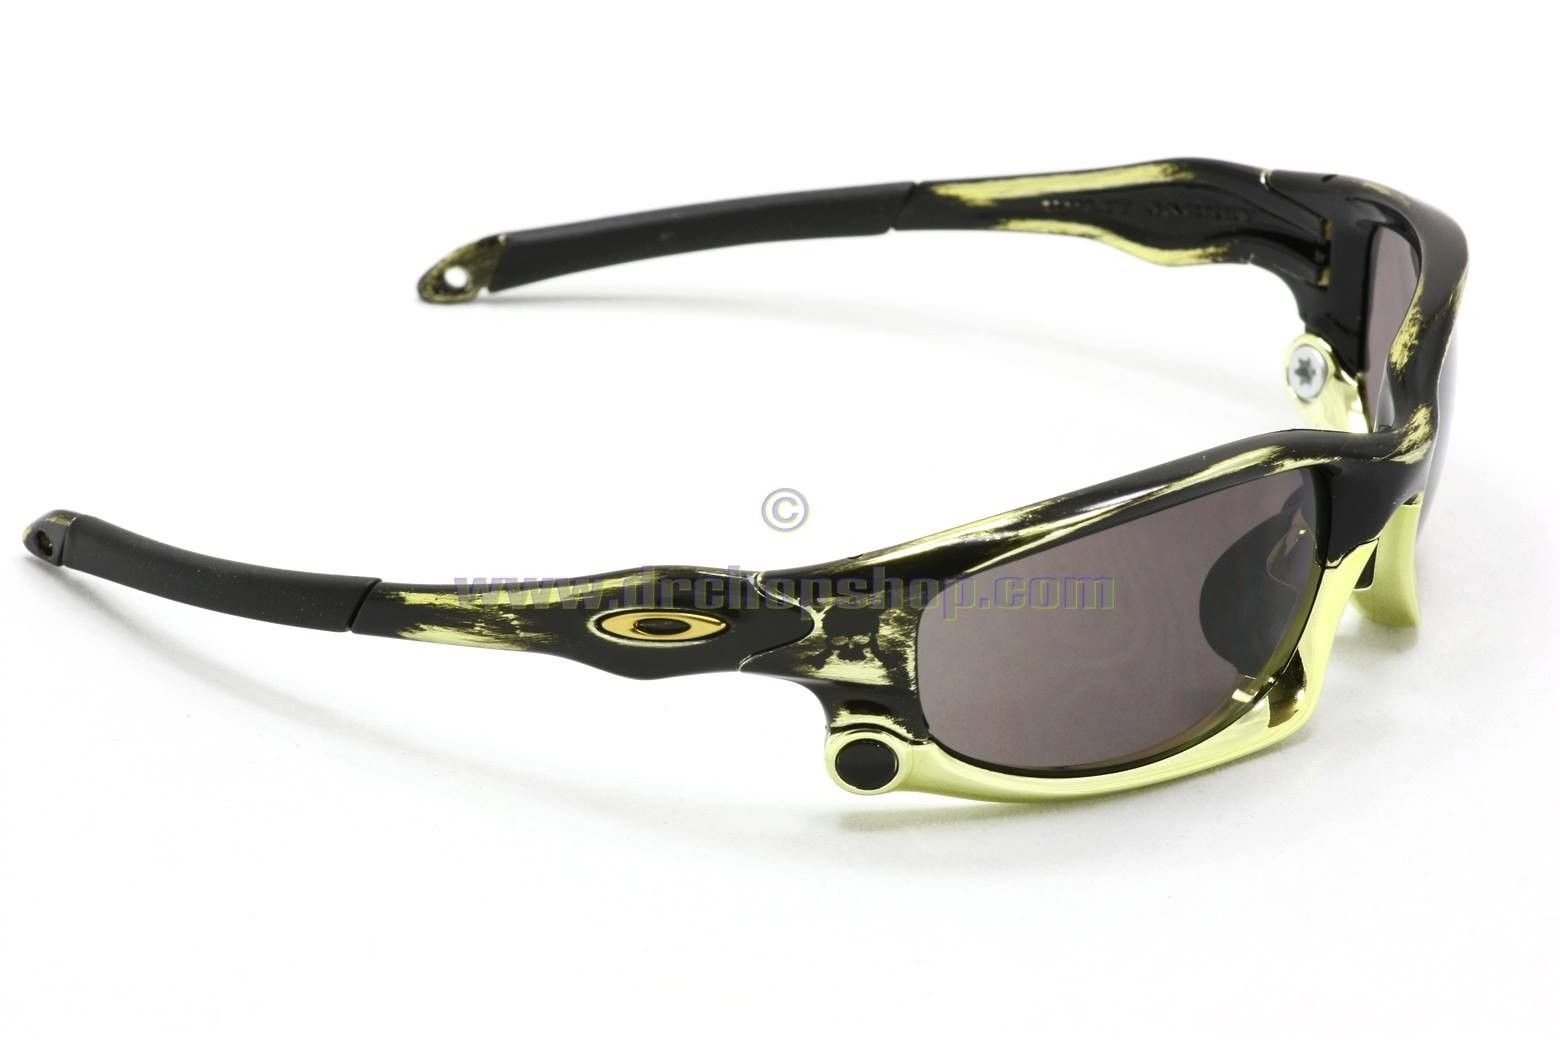 Frogskins, Racing Jacket, Hijinx, & More Customs - 1167429_660747330603623_875033489_o.jpg